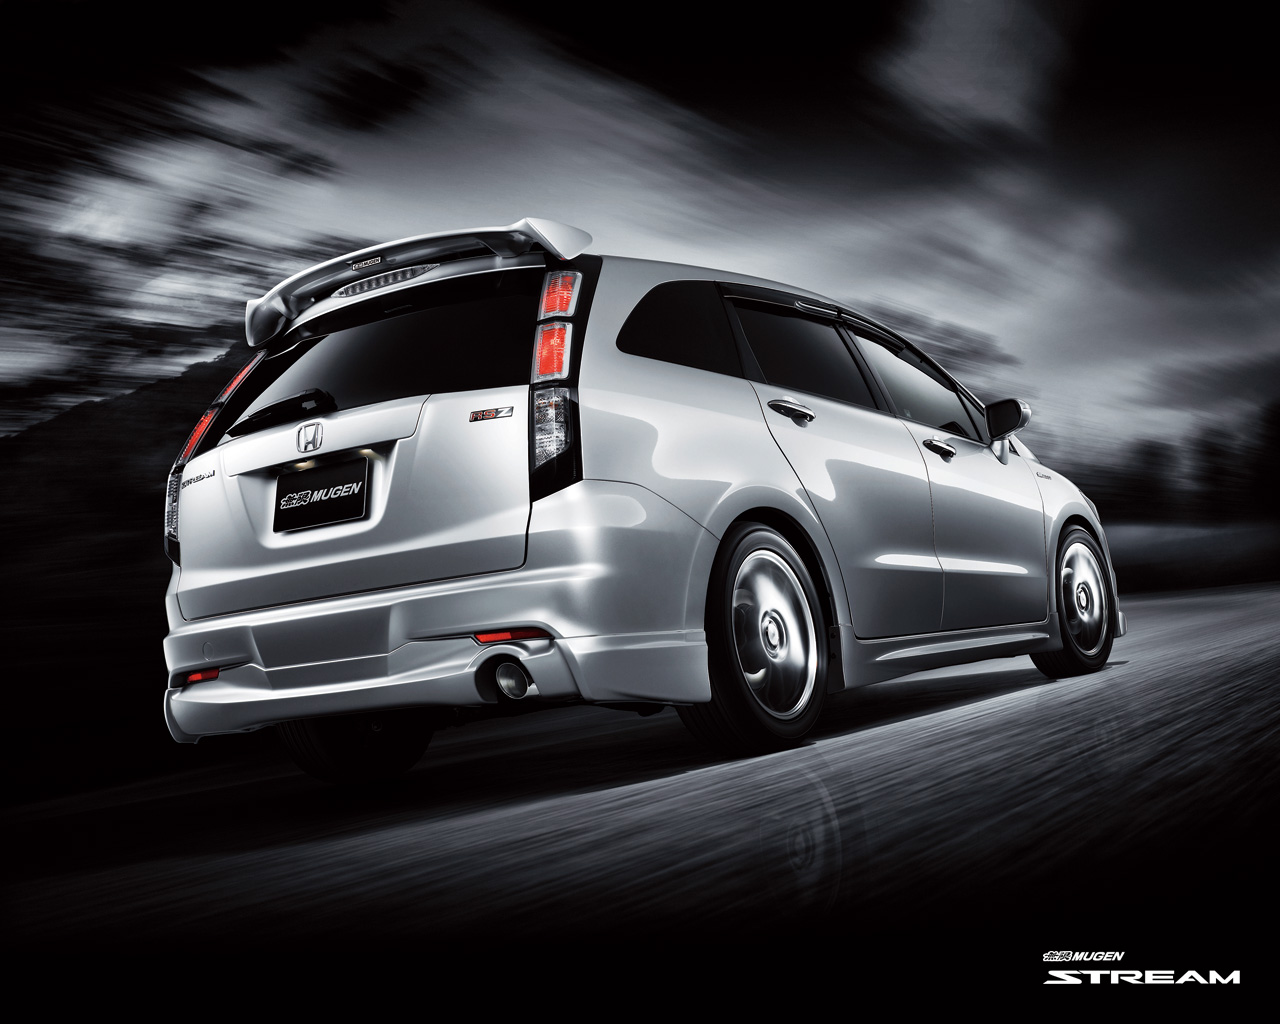 honda stream wallpaper